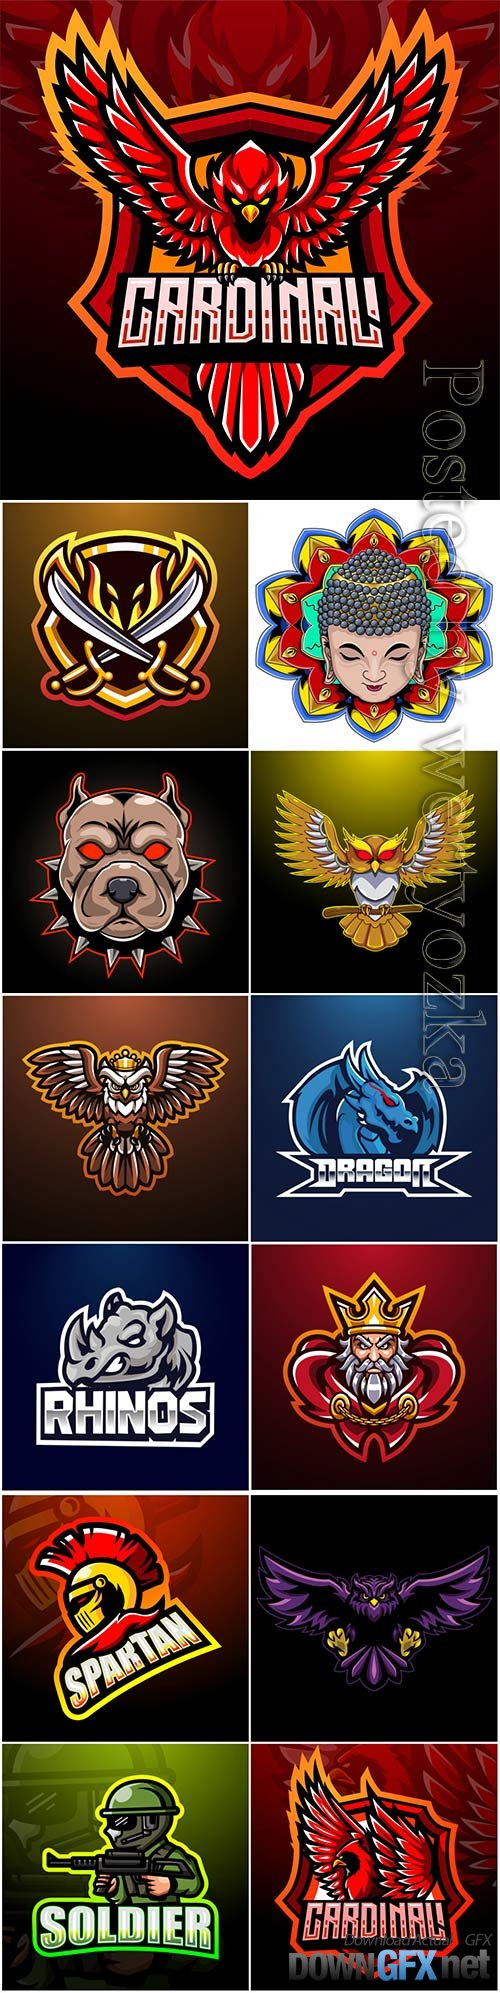 Mascot esport logo design premium vector vol 39